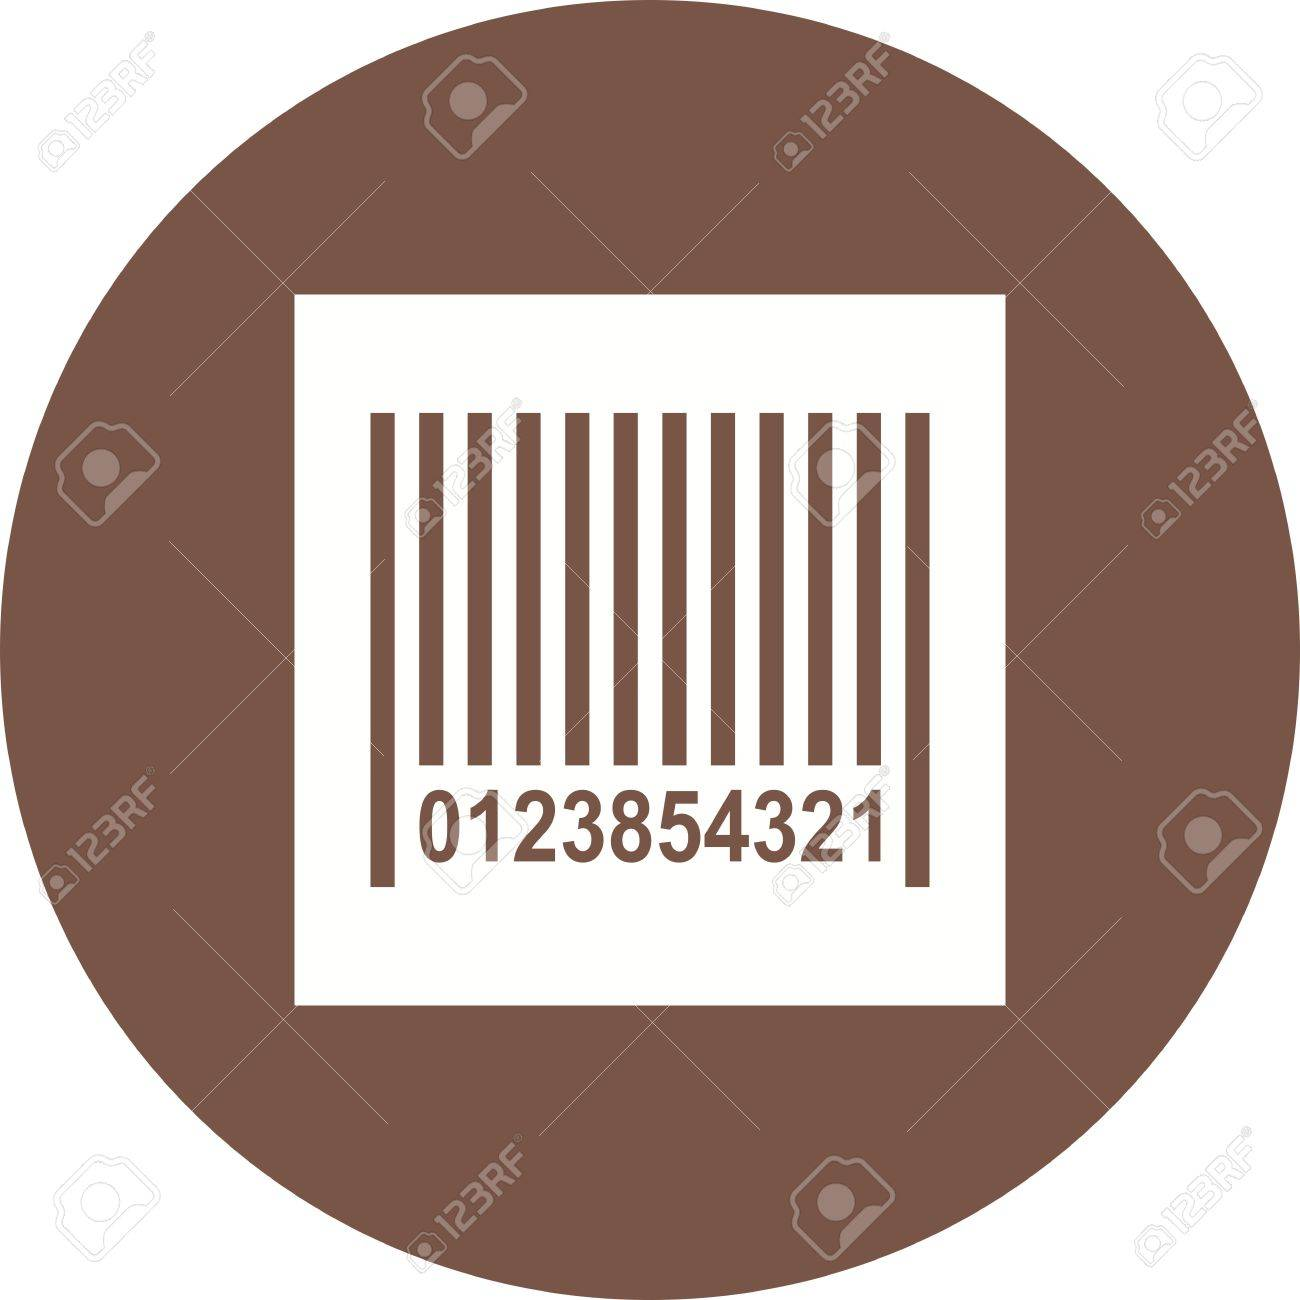 Barcode, scanner, label icon vector image  Can also be used for